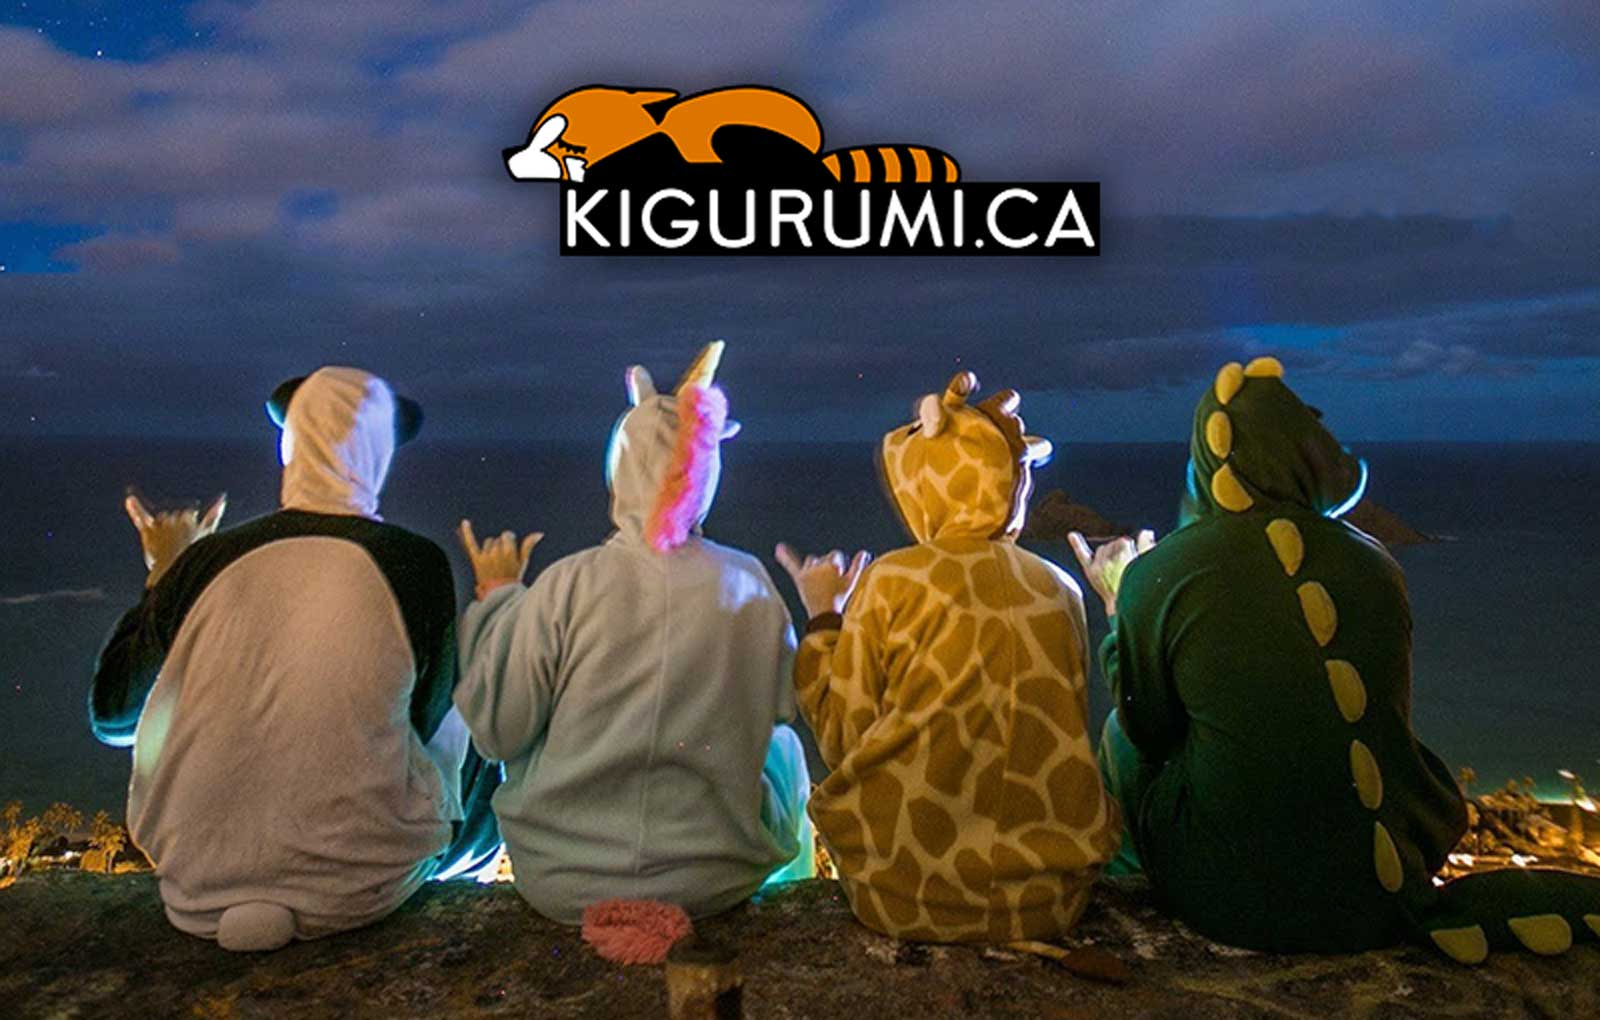 Kigurumi case study - hide out of stock